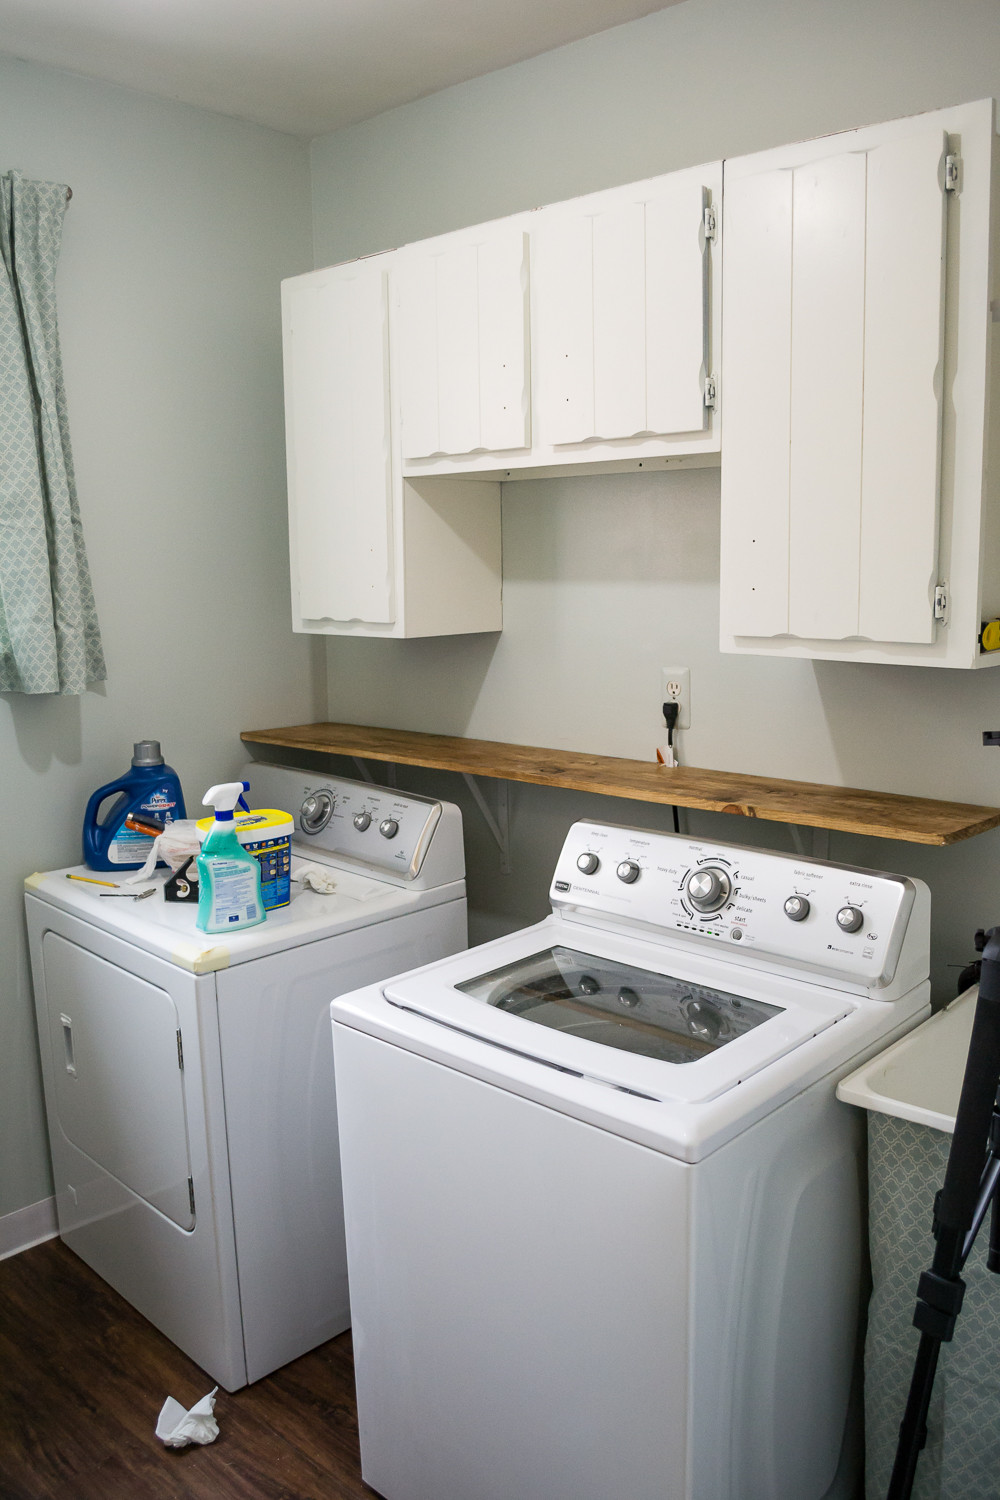 Best ideas about Laundry Room Makeover . Save or Pin This $300 Laundry Room Makeover Will Make Your Jaw Drop Now.